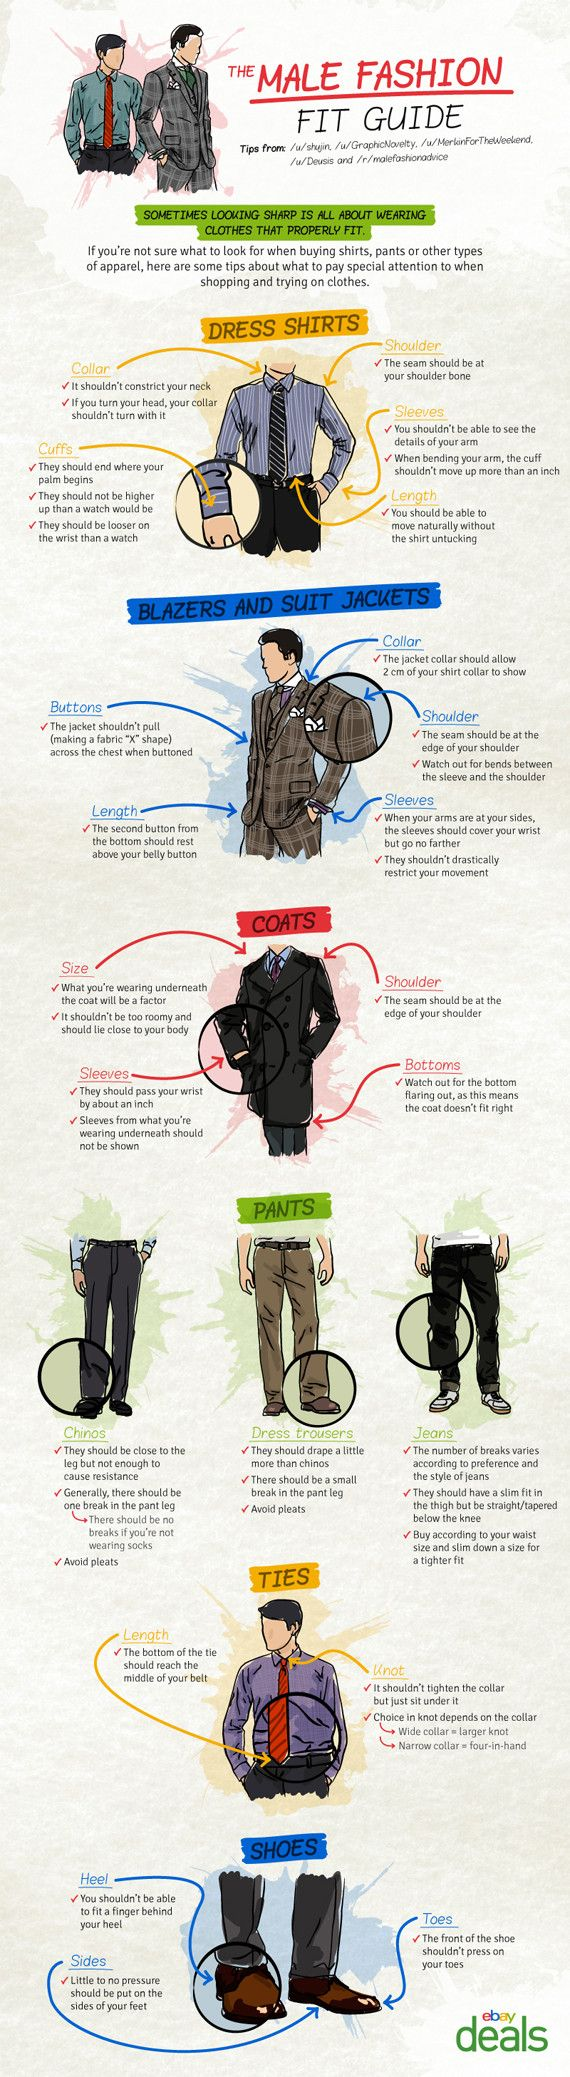 MEN'S FIT GUIDE:  Tips about what to pay attention to when buying pants, shirts or other types of apparel.---> FOLLOW US ON PINTEREST for Style Tips, our current SALES, men's Wardrobe essentials etc... ~ VujuWearMen's fashion fit infographic